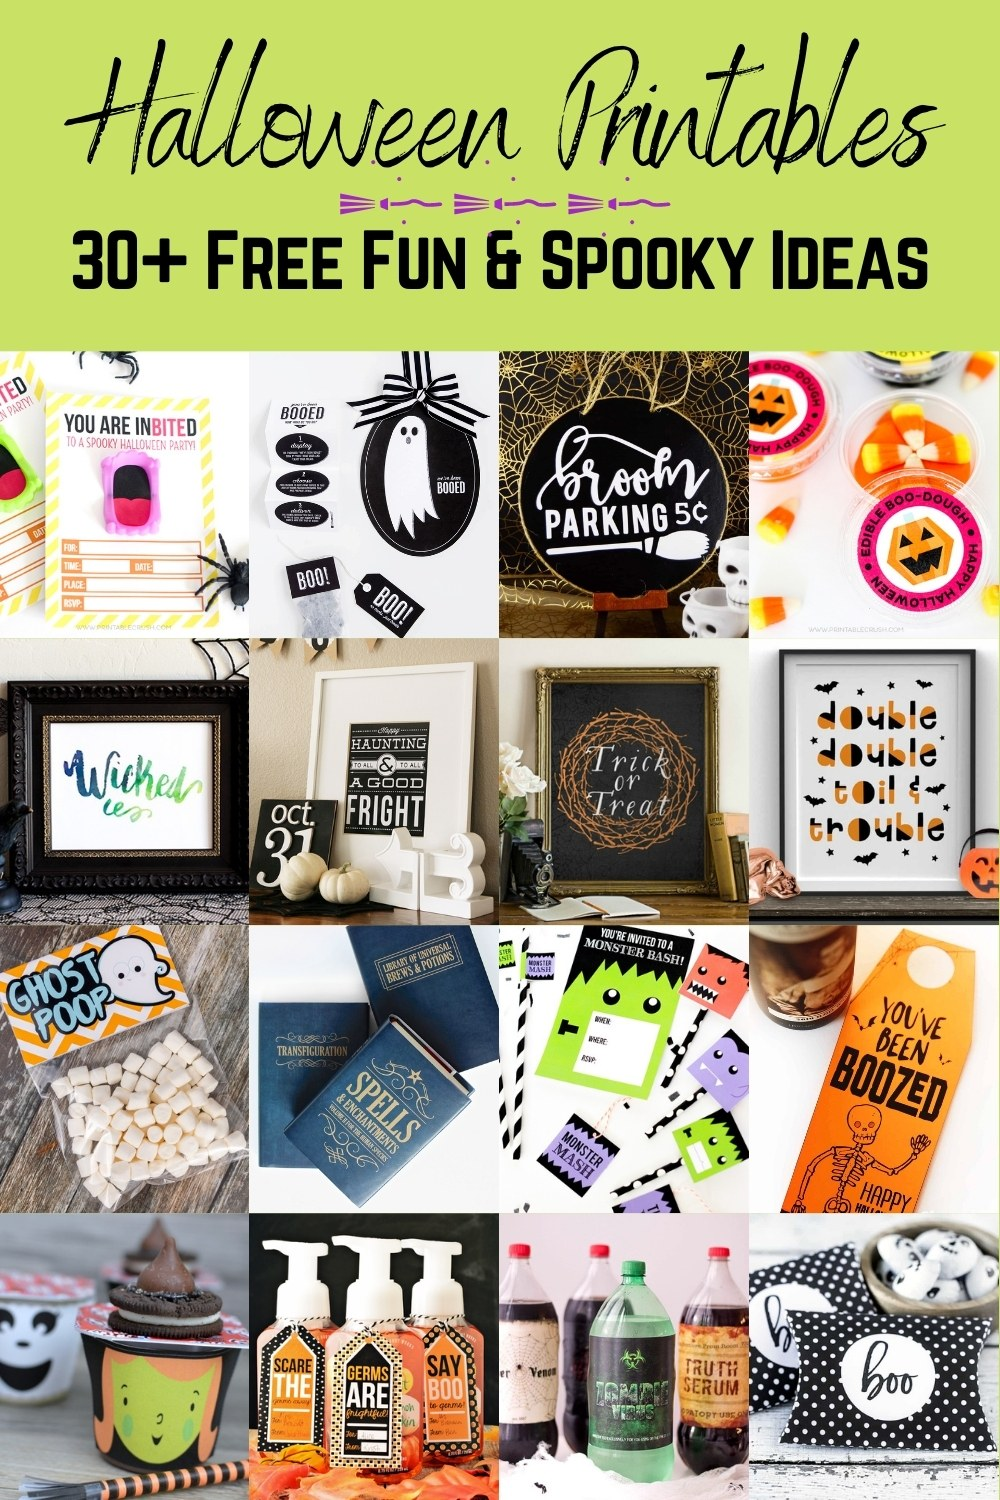 33 Fun and Spooky Free Halloween Printables